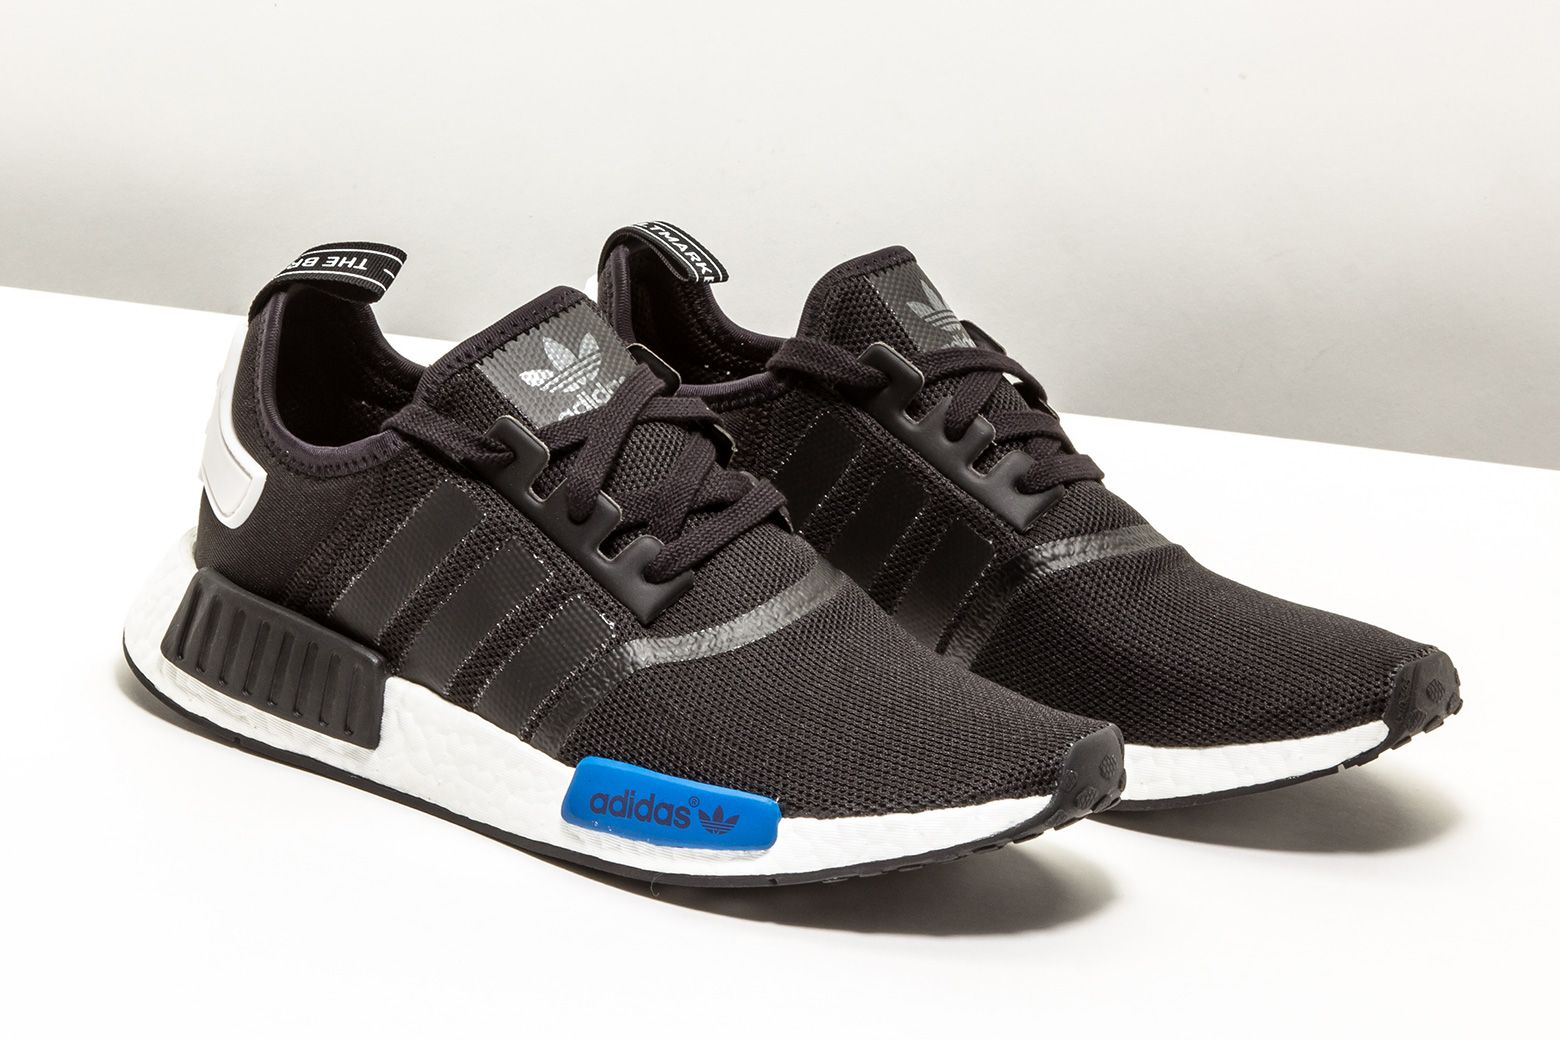 Adidas NMD Runner - S79162 in 2020